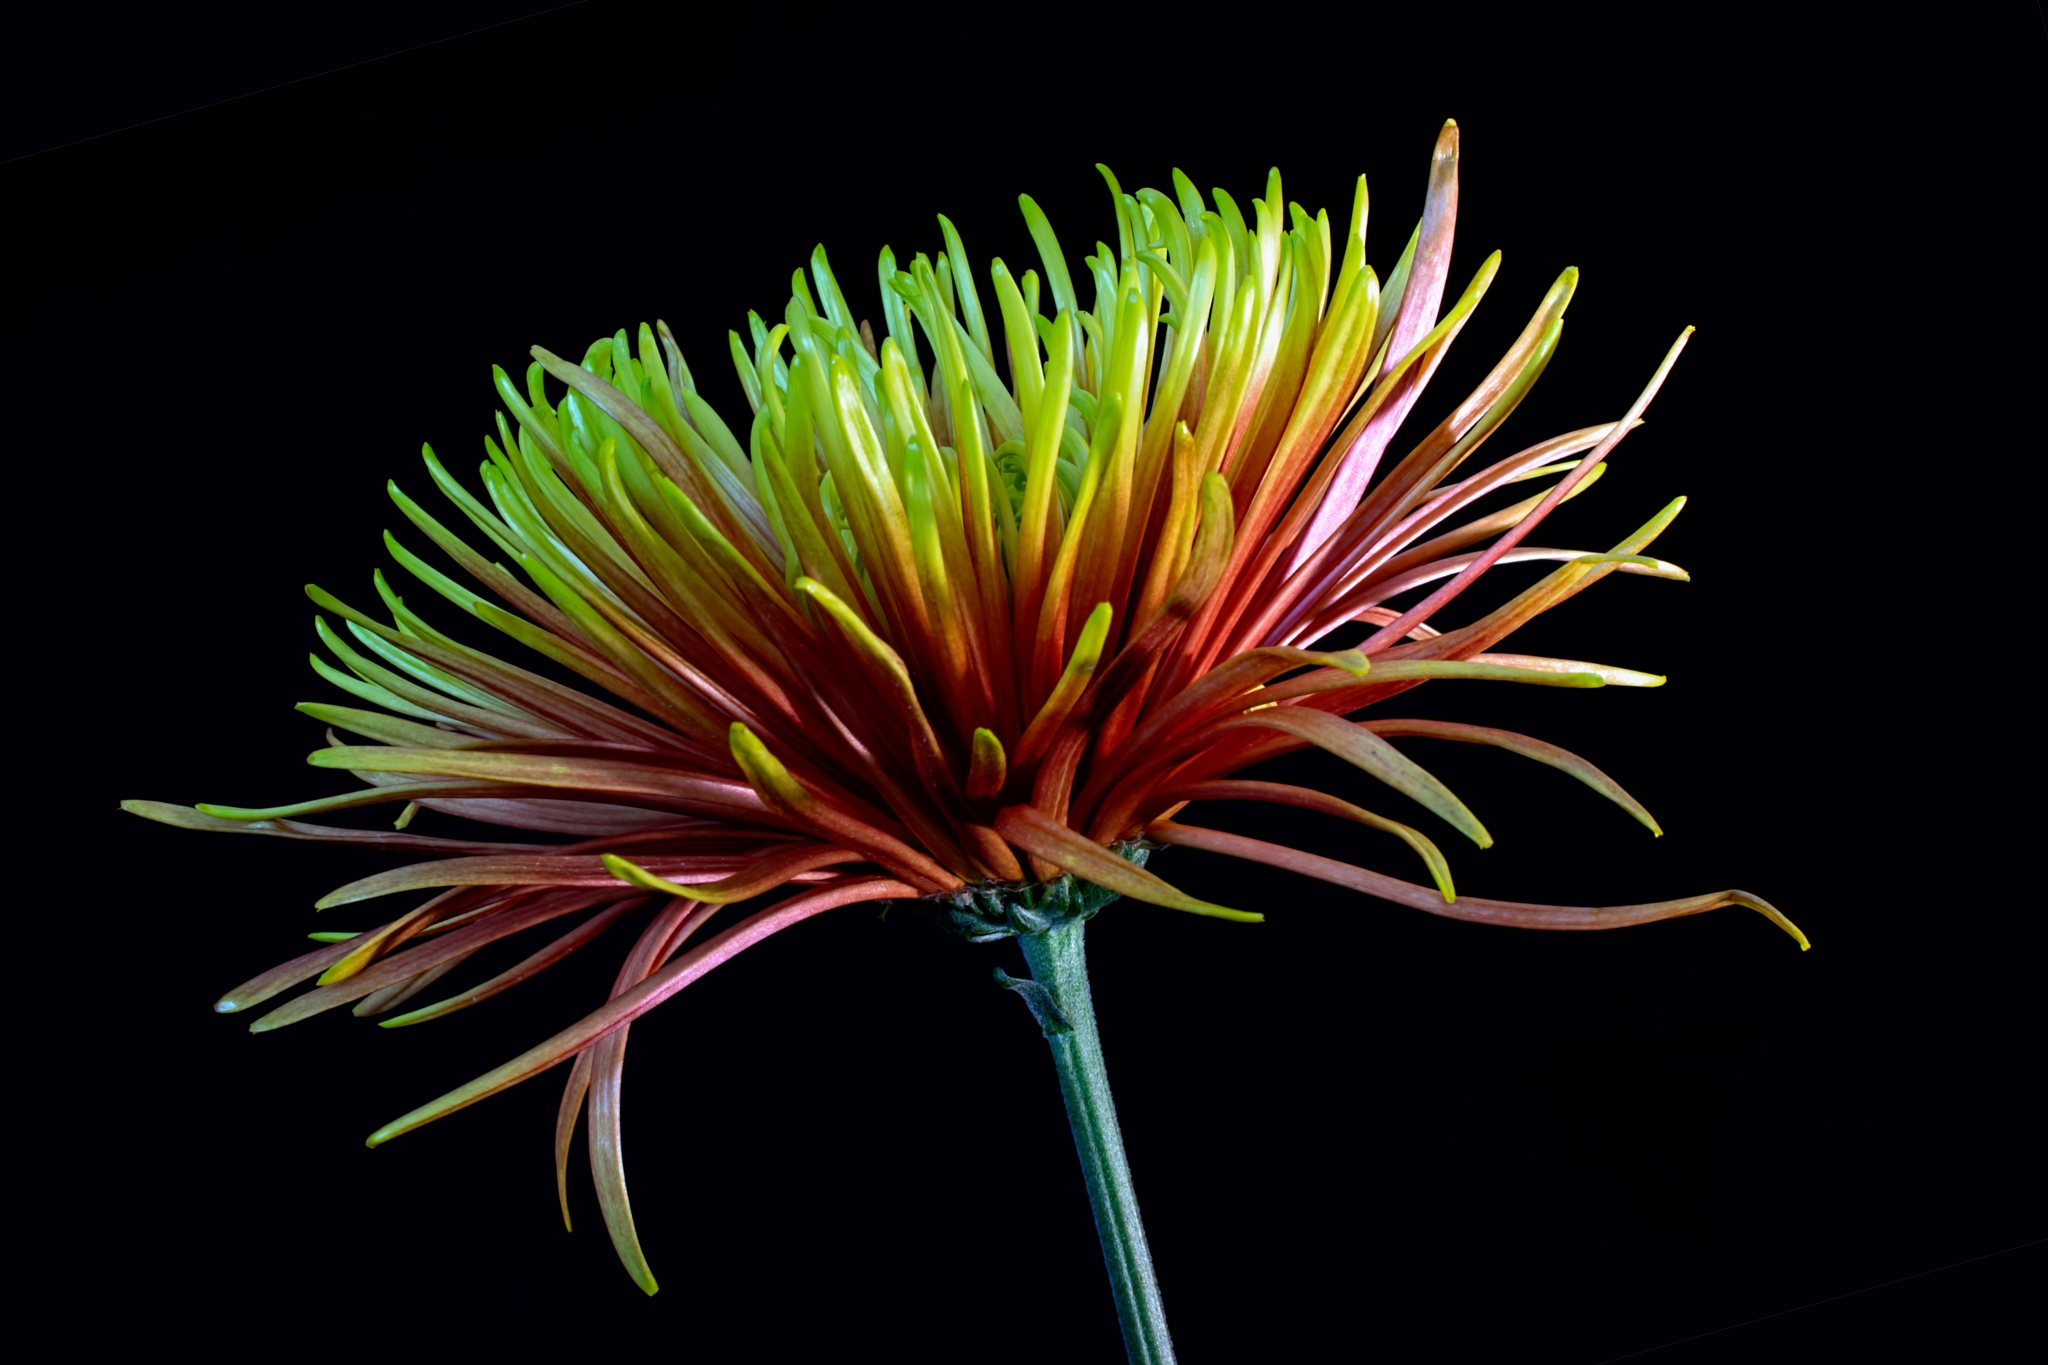 Colorful Bloom on Black 1105 by ThomasJerger